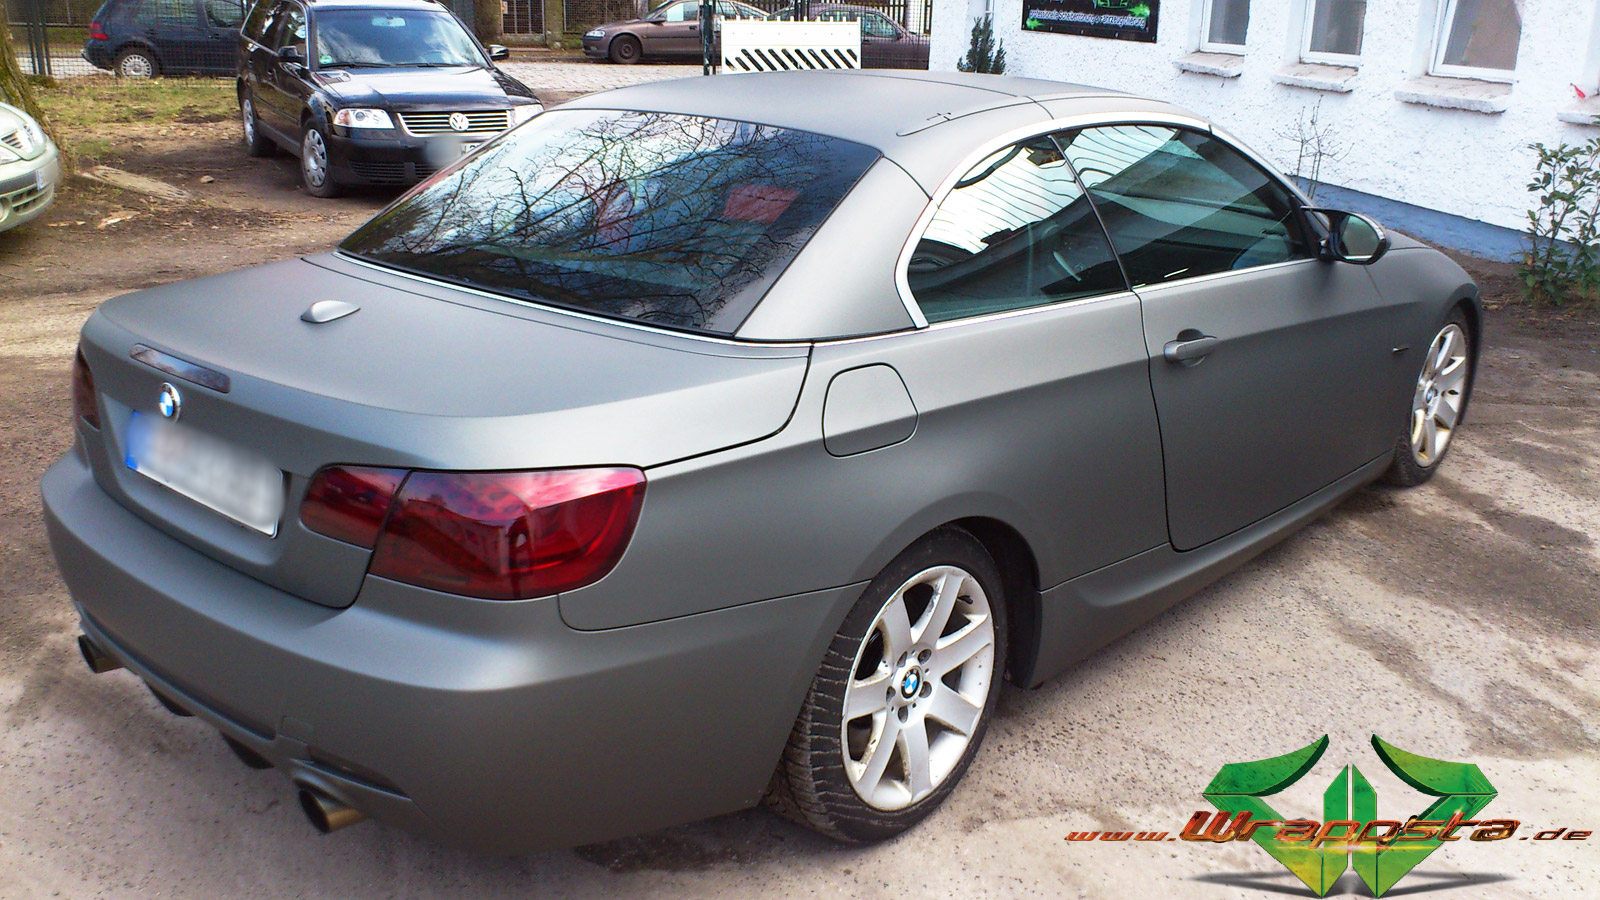 Anthrazit Metallic Bmw Bmw 3 Ultra Matt Anthrazit Metallic Wrappsta Berlin